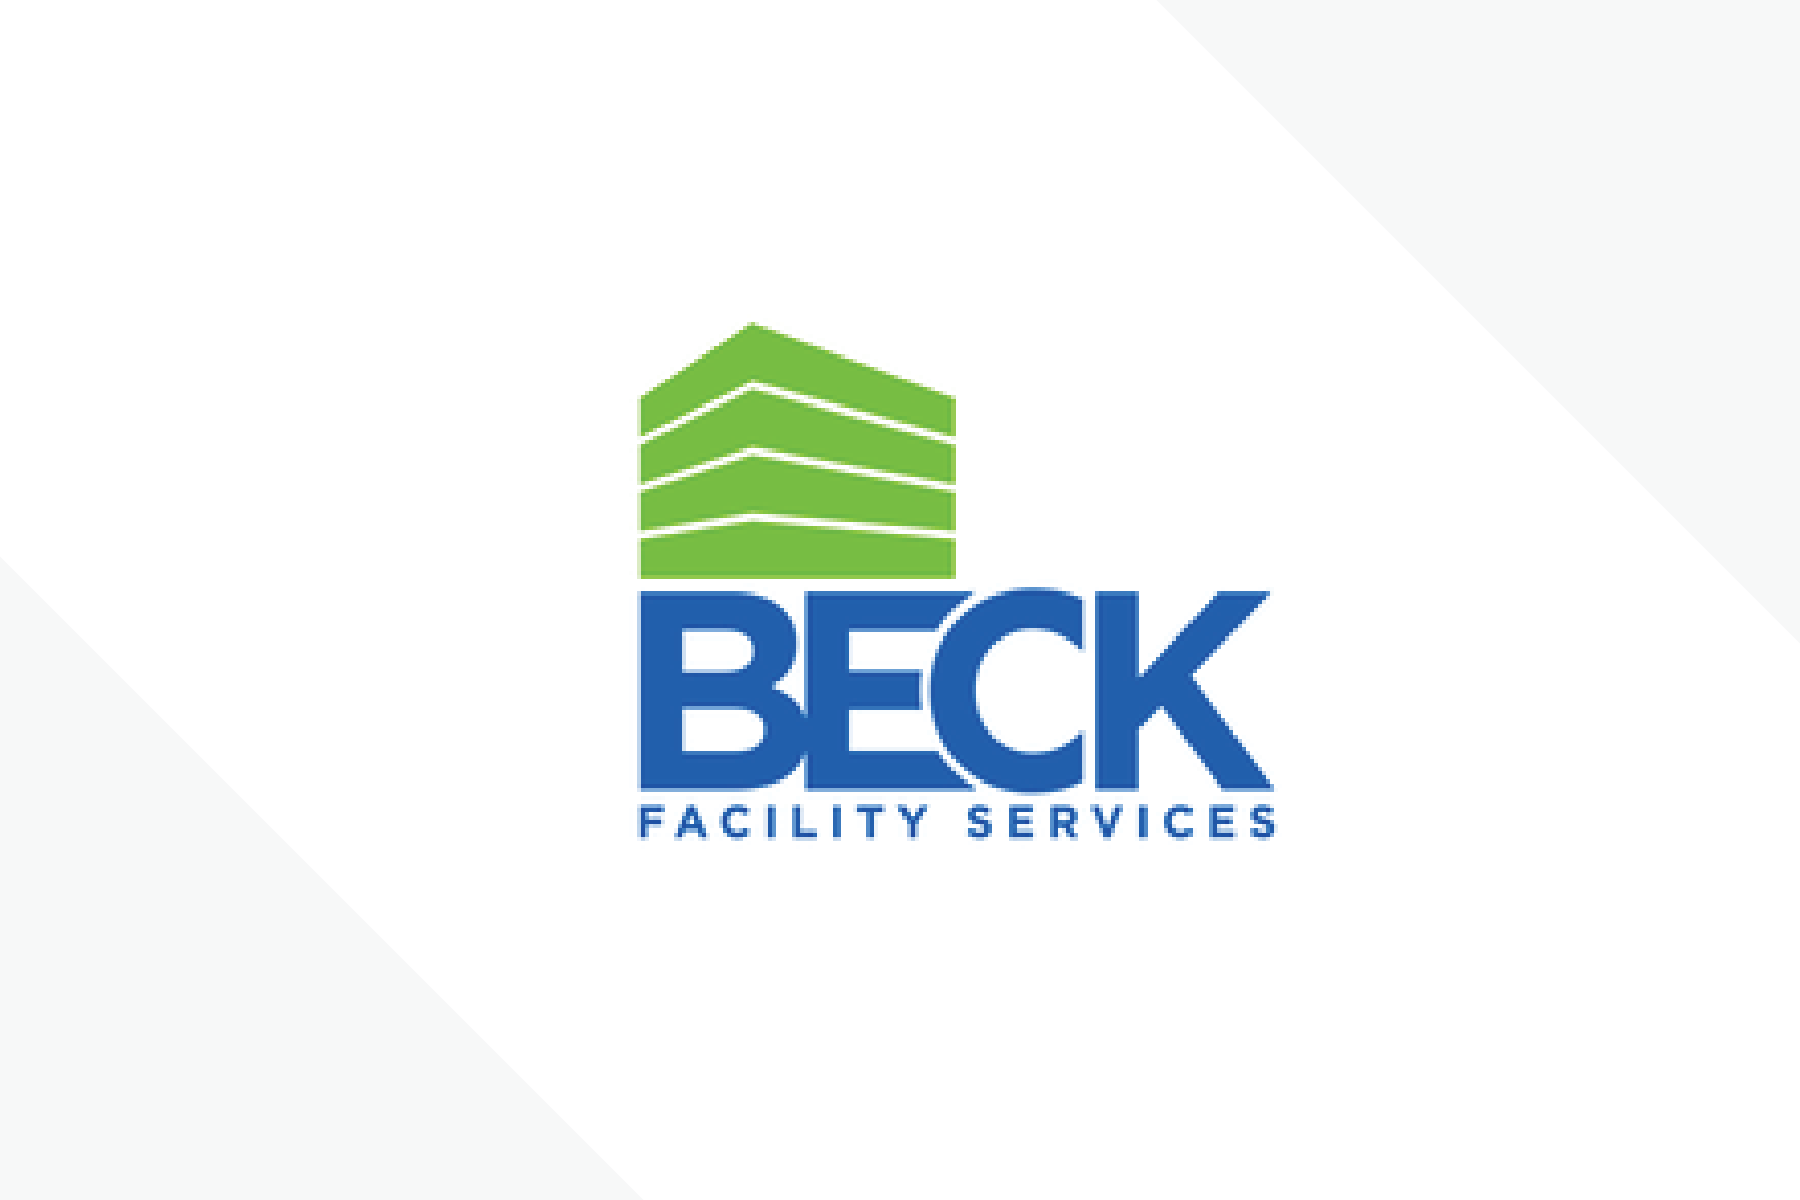 Beck facility services